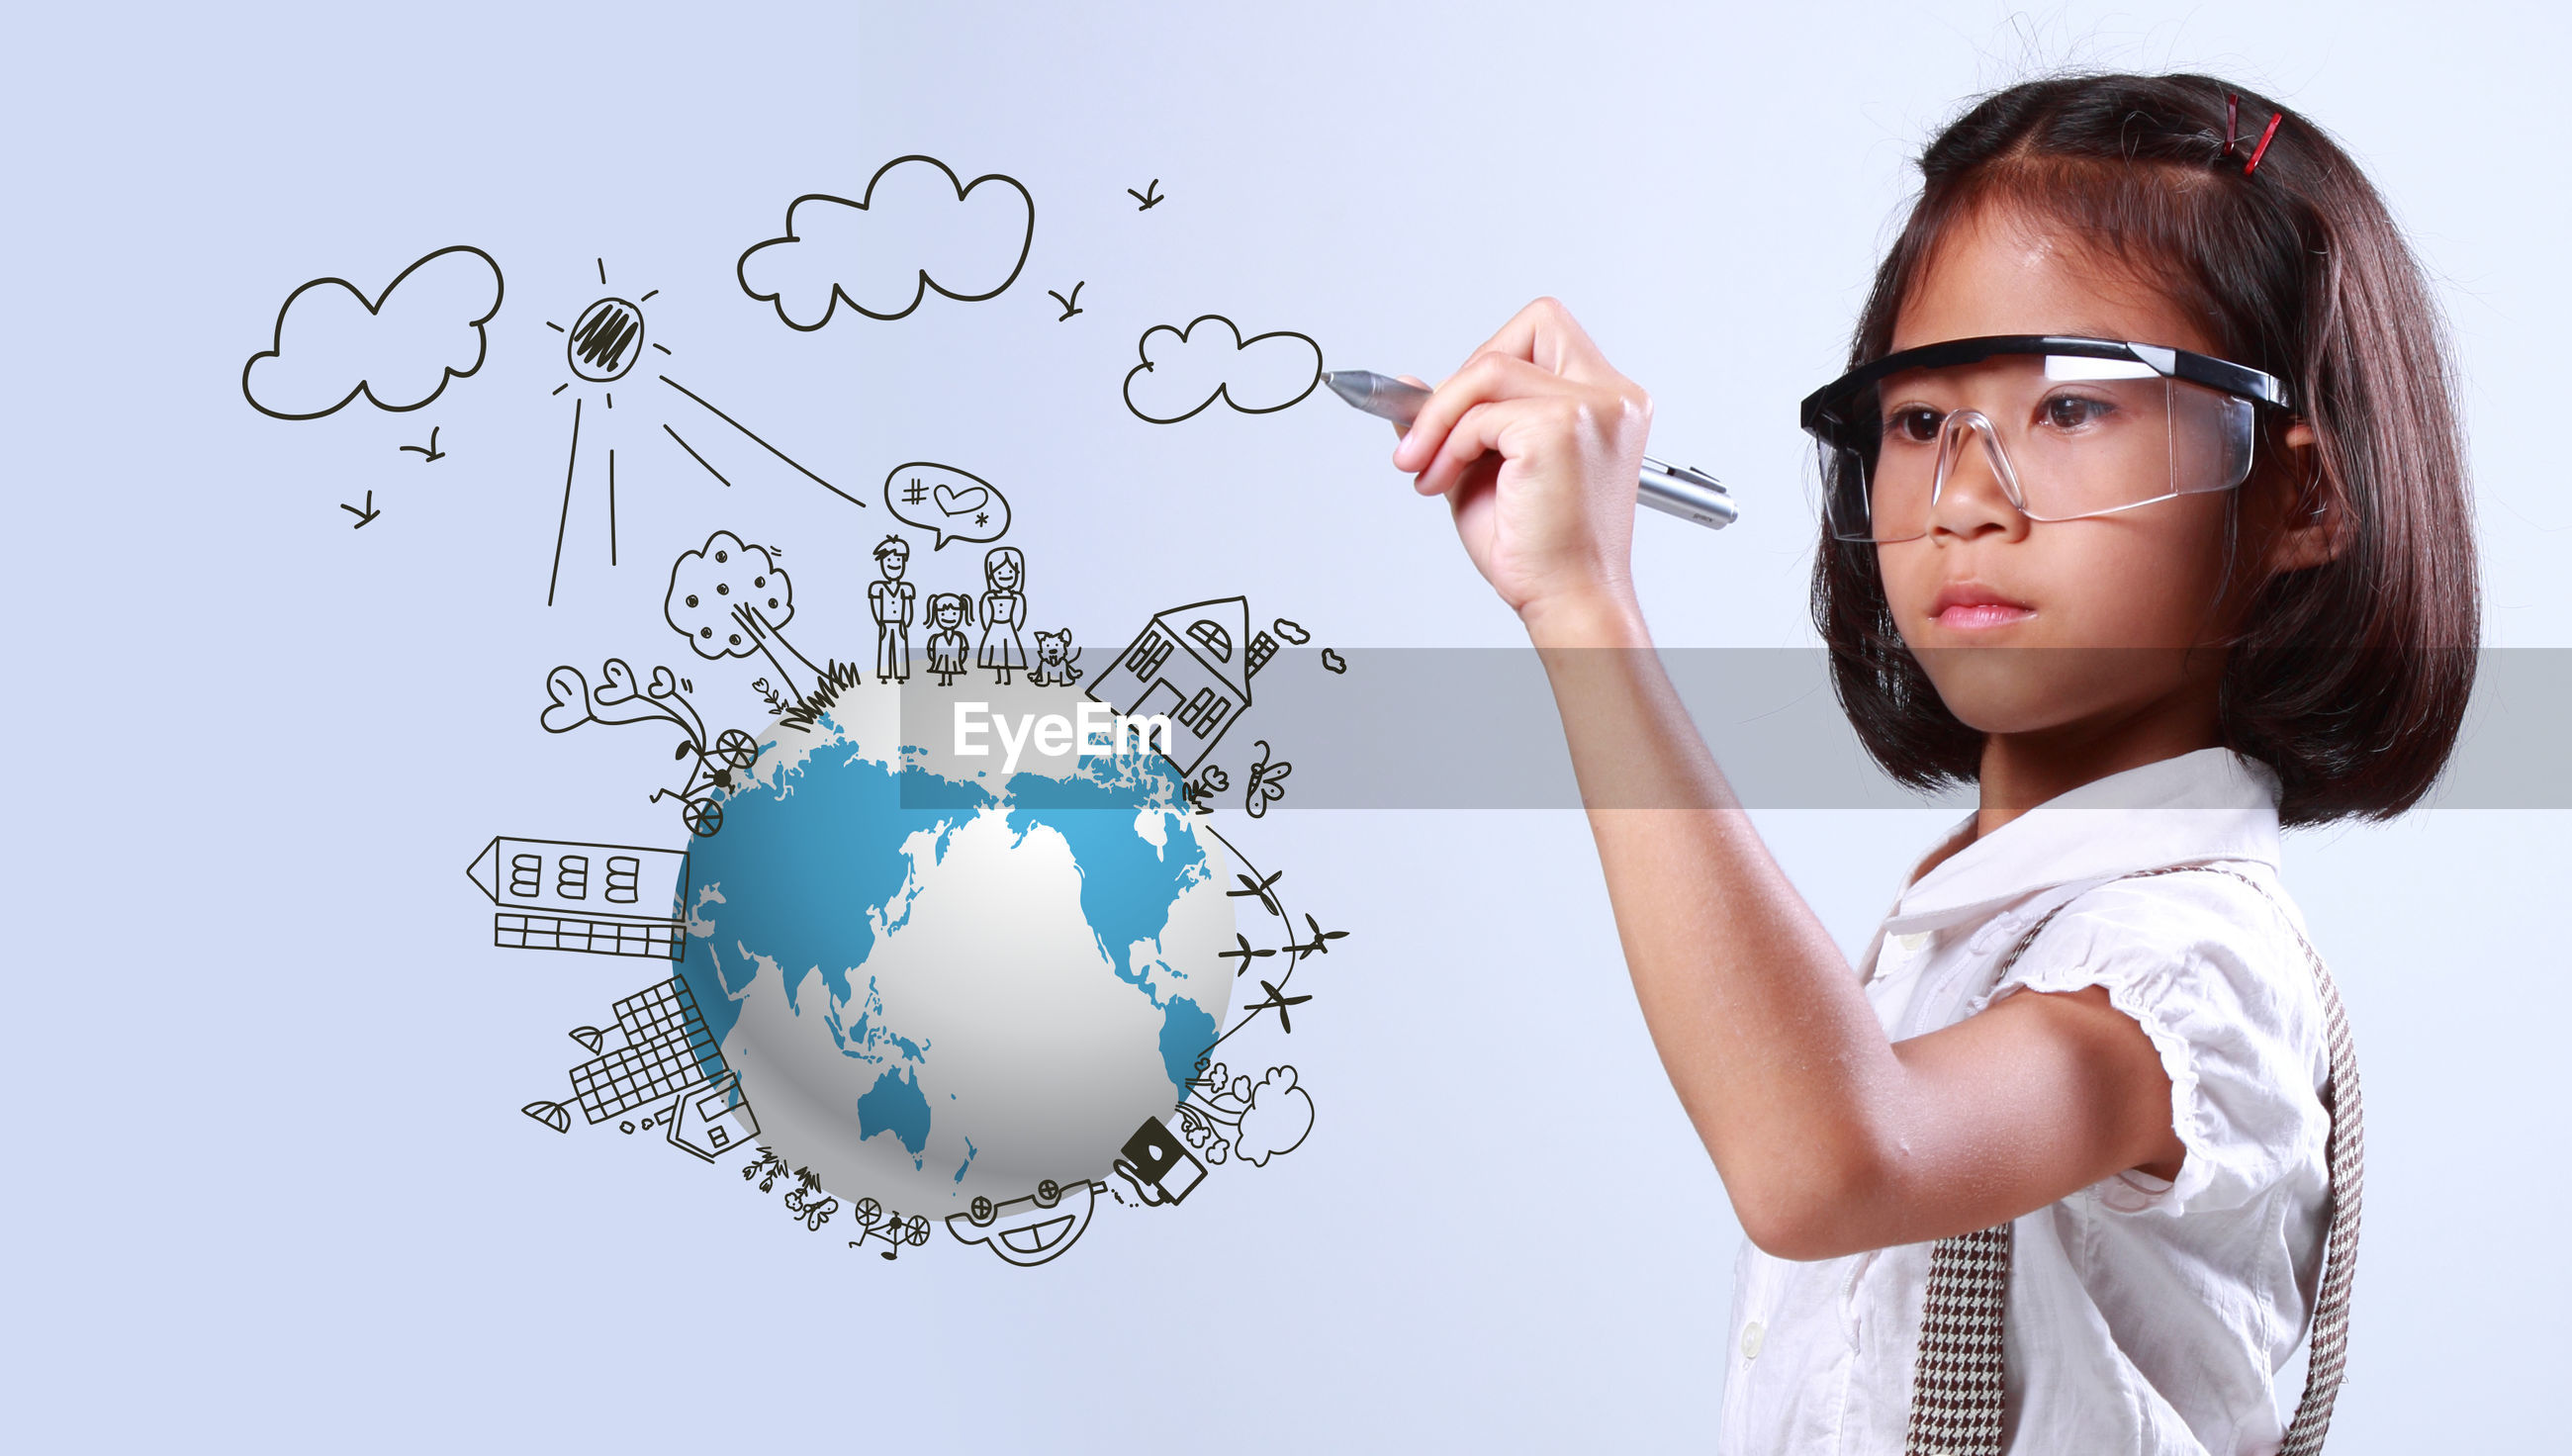 Digital composite image of girl drawing over earth against white background